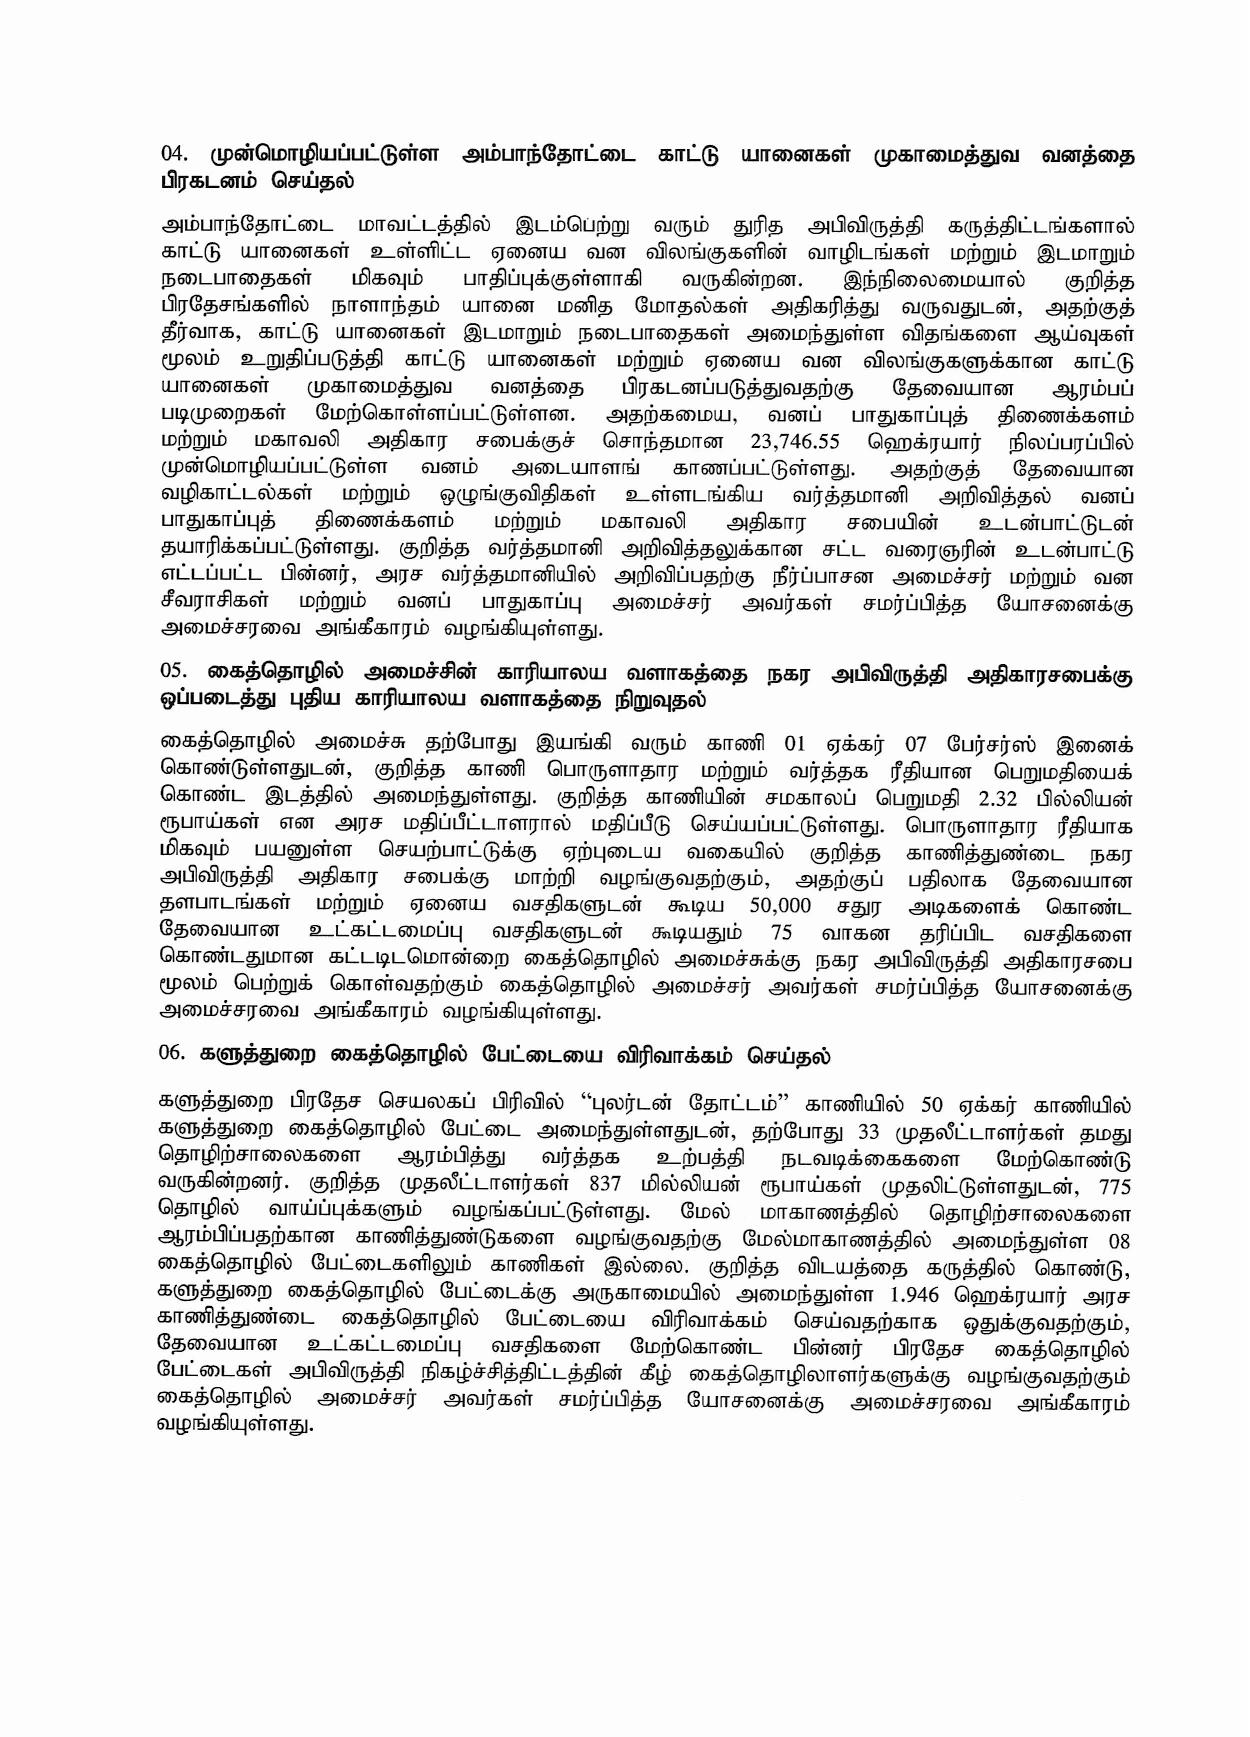 Cabinet Decision on 22.02.2021 Tamil page 002